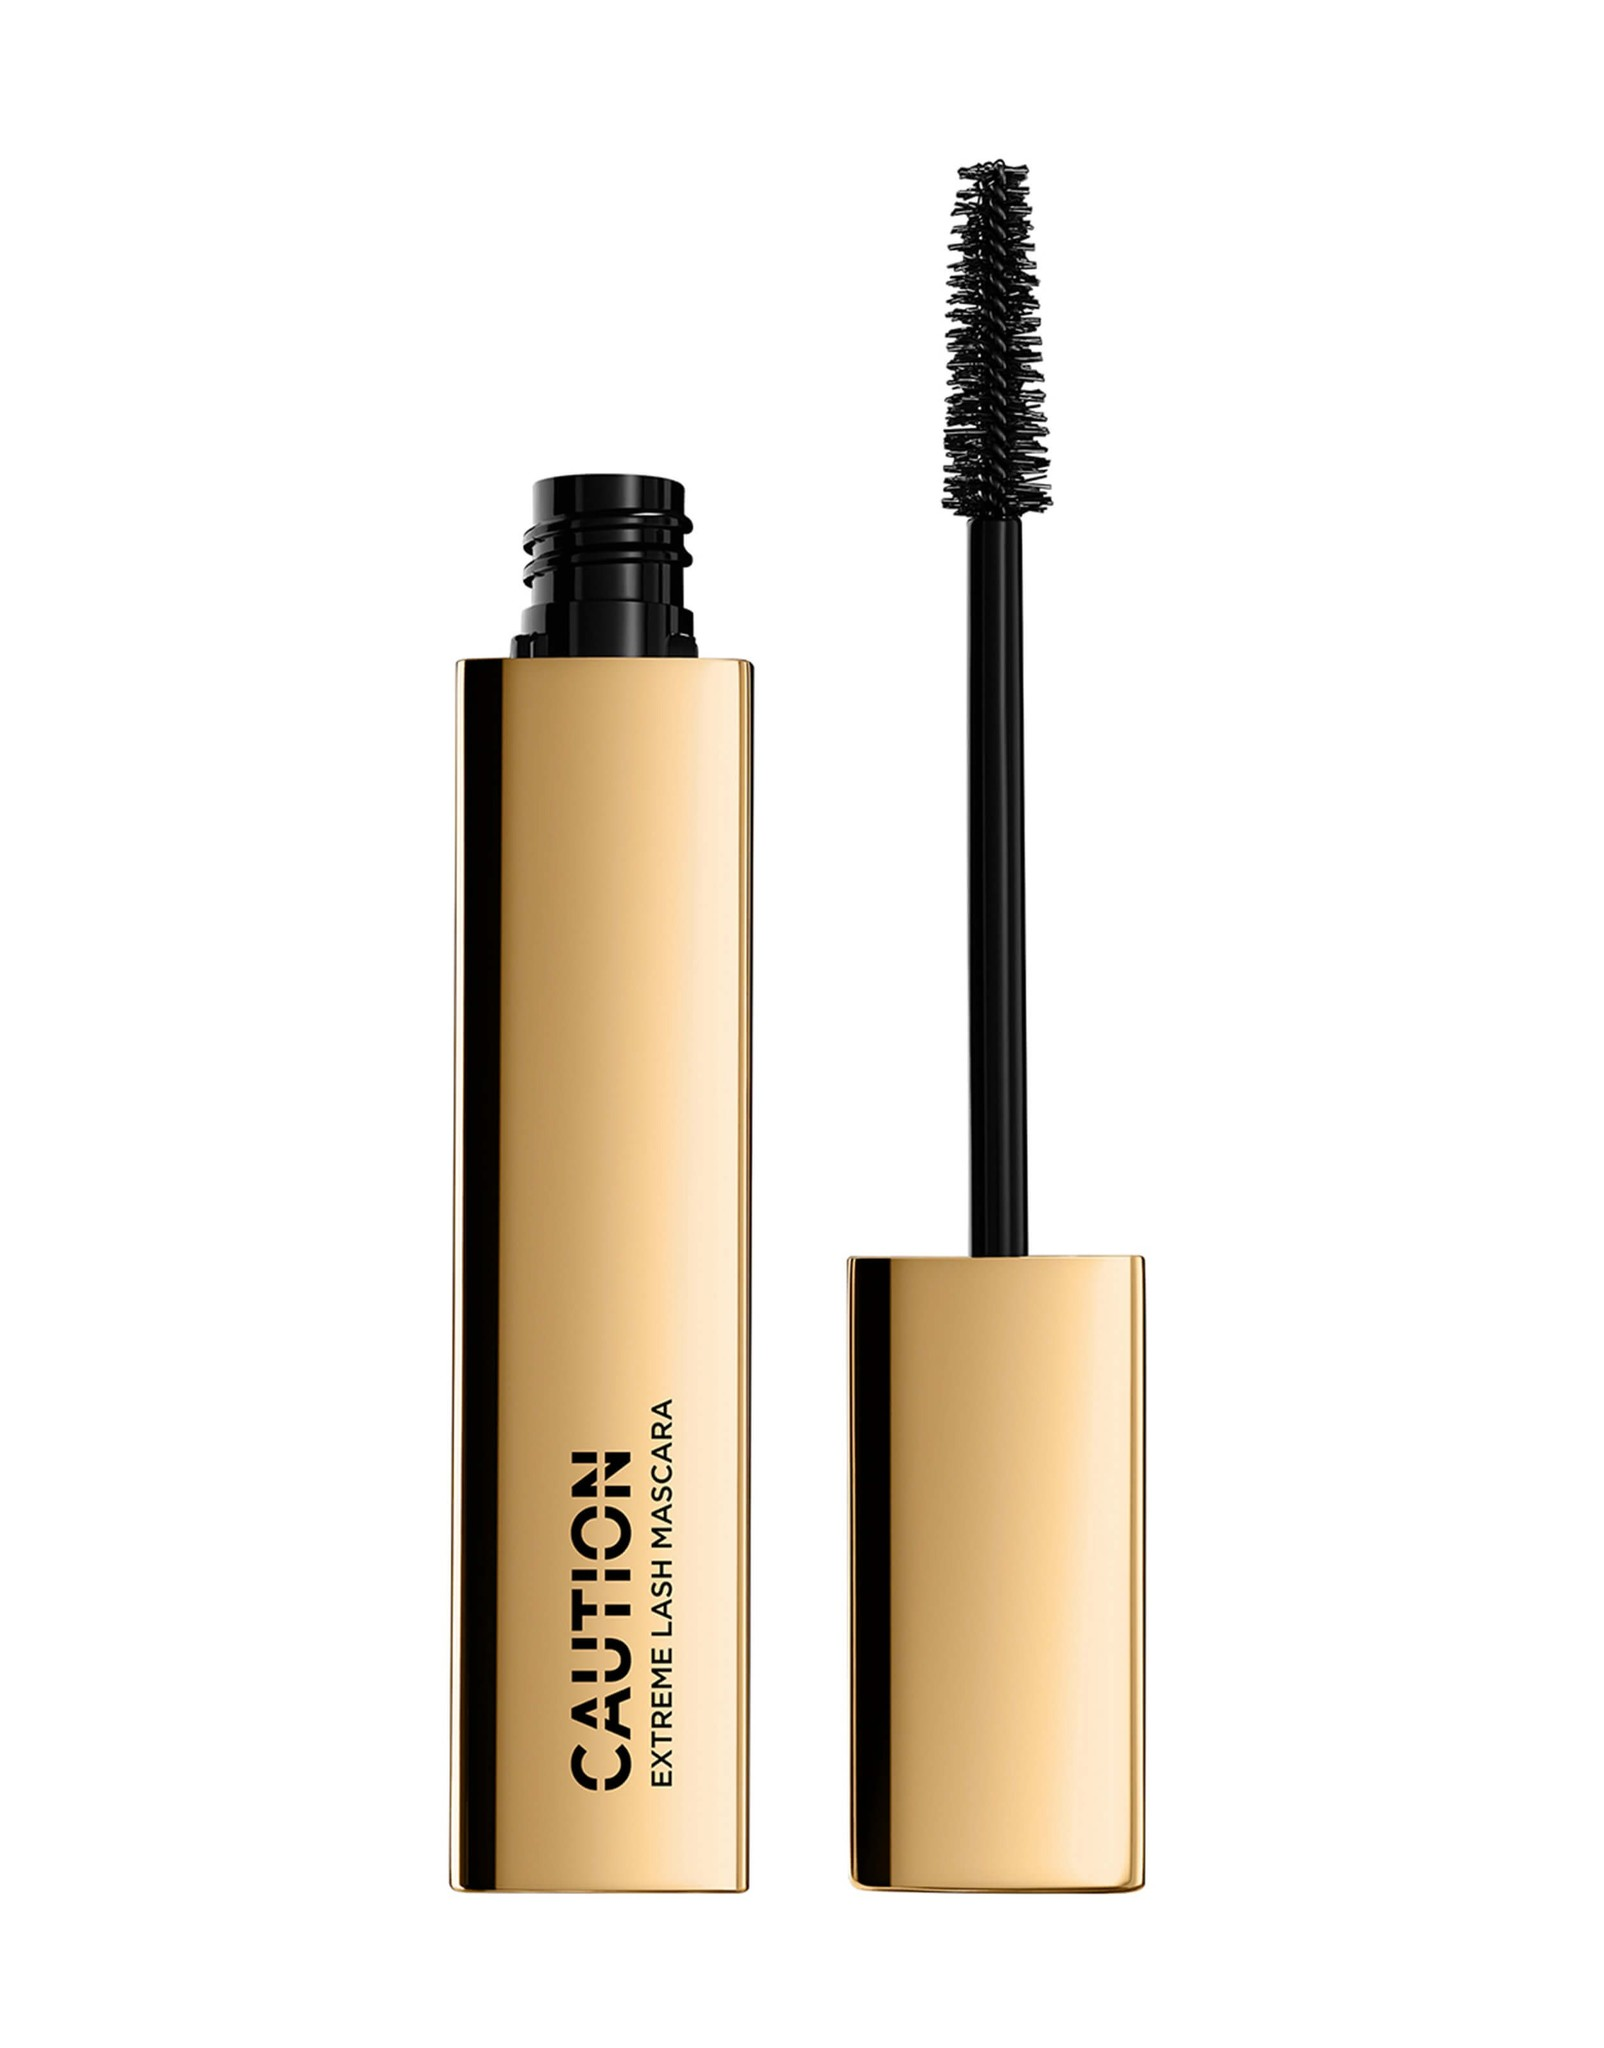 Тушь для ресниц Caution Extreme Lash Mascara